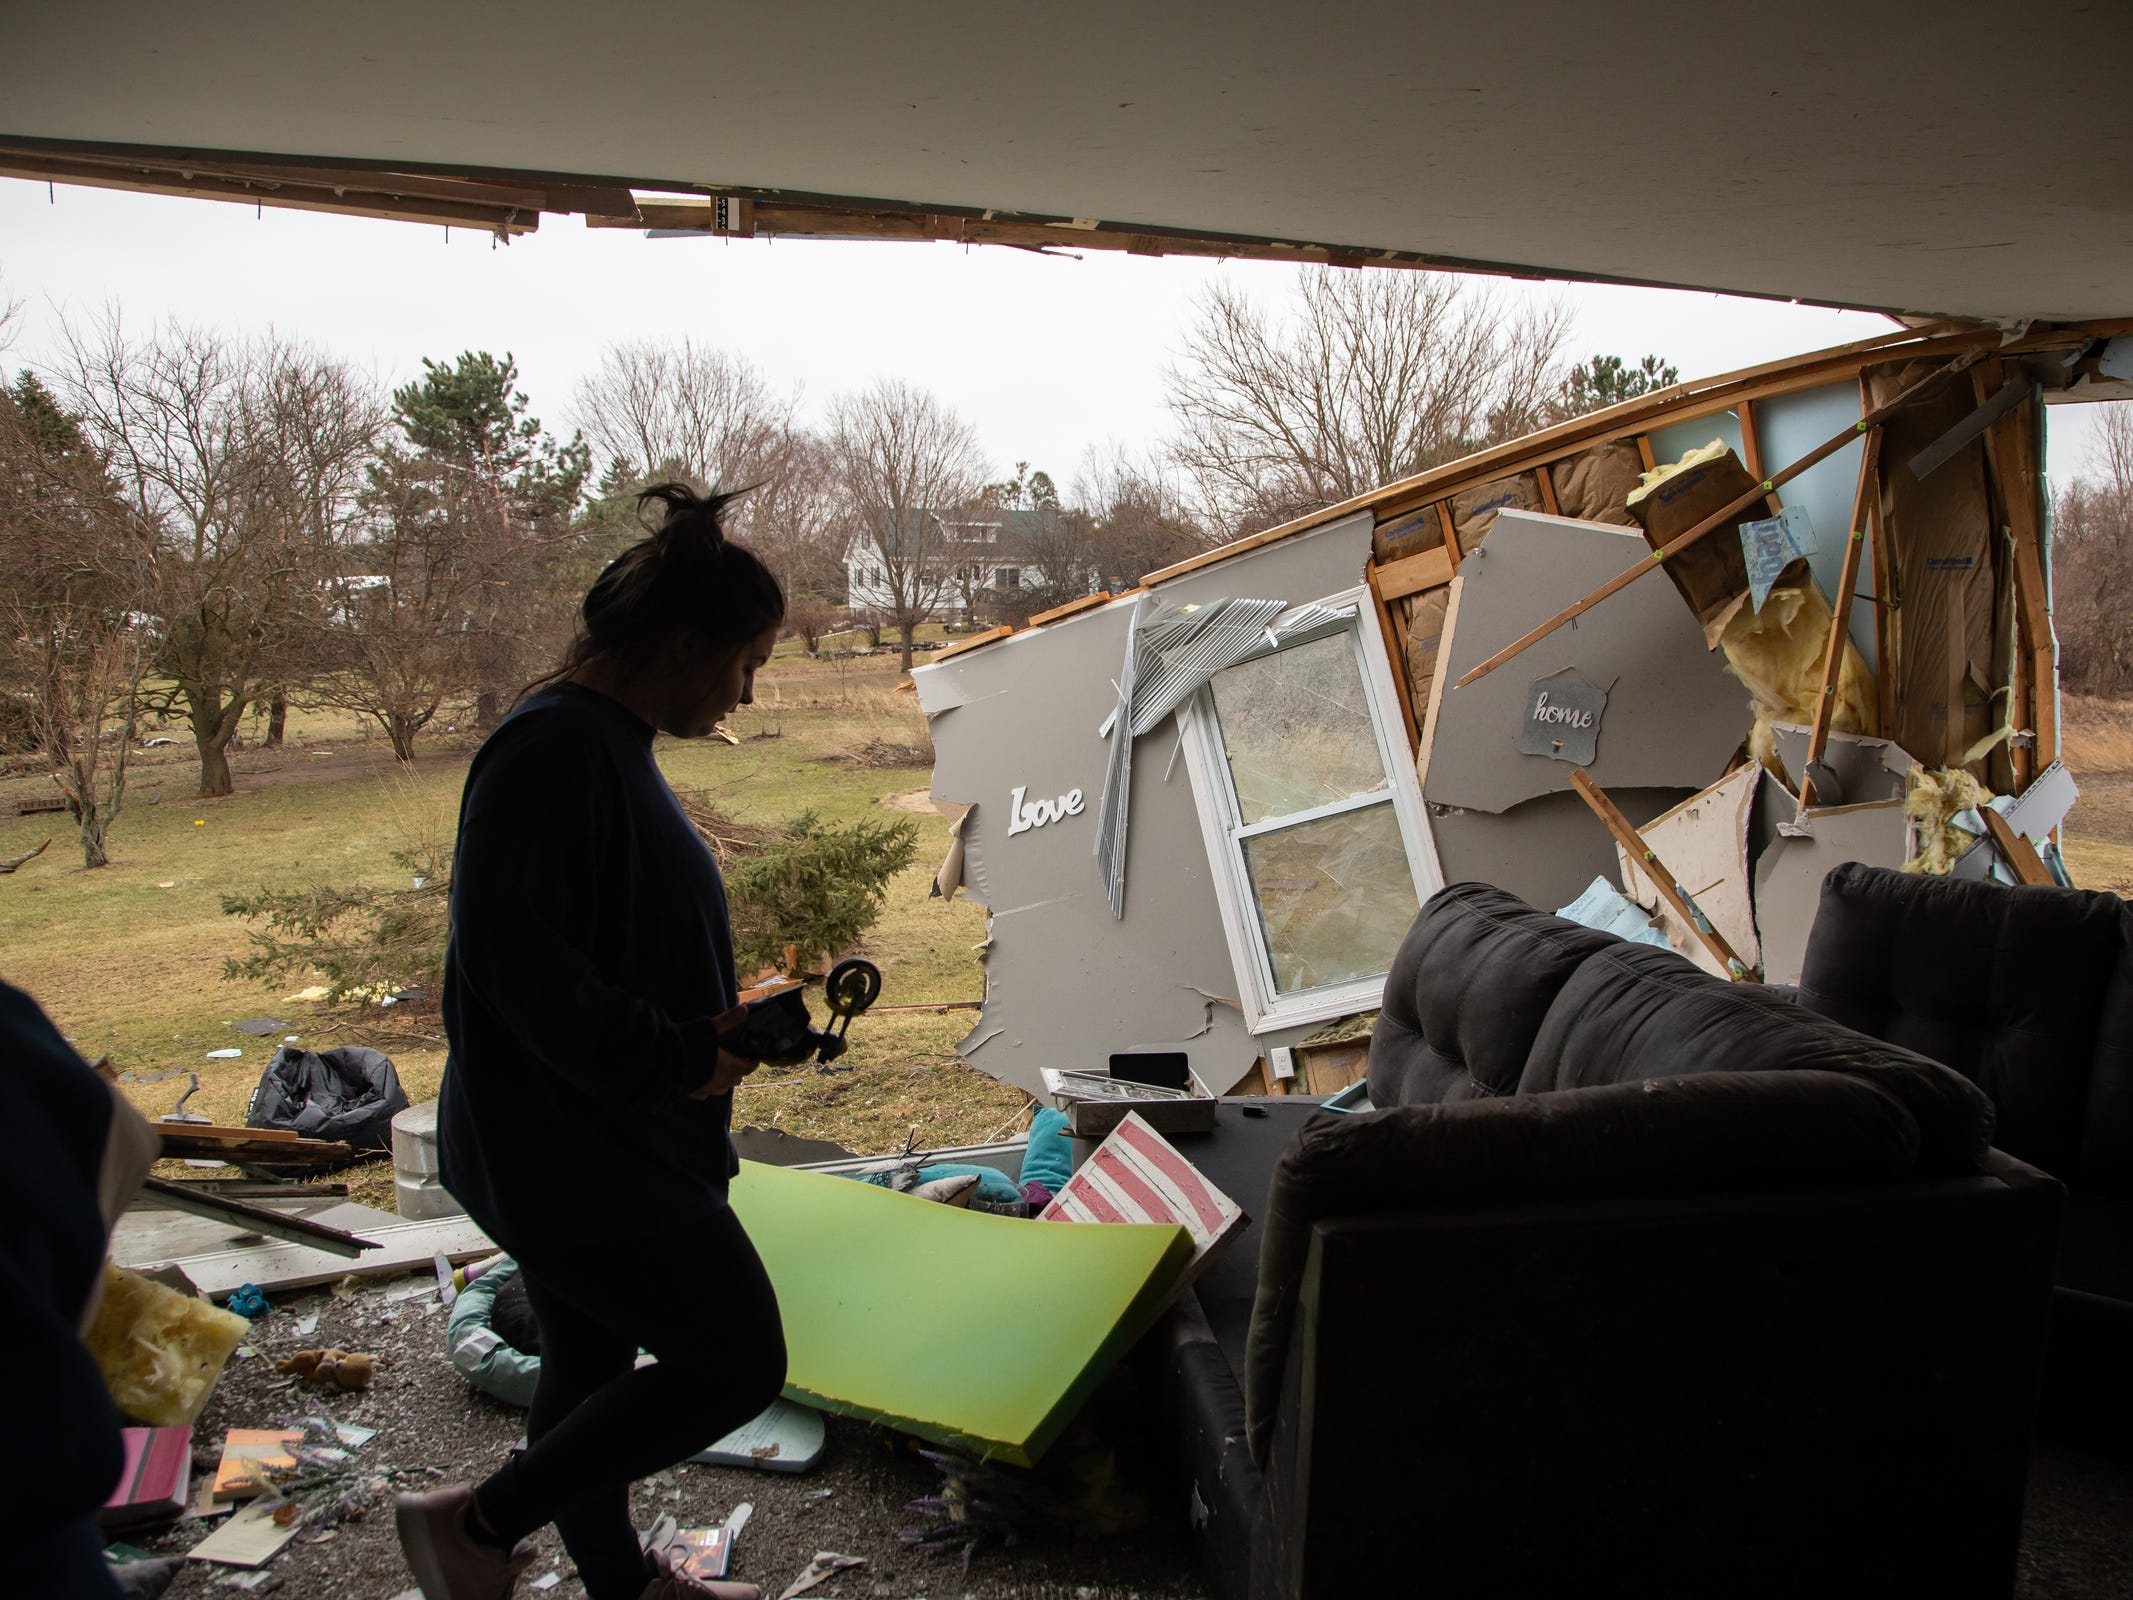 """Mackenzie Weaver helps clear items from the living room area of her mother's home in Bancroft on Friday, March 15, 2019 that was damaged after a tornado moved through Shiawassee County overnight. """"When I came to the house today I wasn't expecting it to be as bad as it really is. It freaked me out it really did. I was crying hysterically. I called in to work today so I could help them out,"""" Weaver said.Weavers mother and her six foster children were in the house at the time of the tornado hitting and got a call from her mother-in-law to get in the basement seconds before it hit. No one was injured but two goats and a chicken died in the storm."""